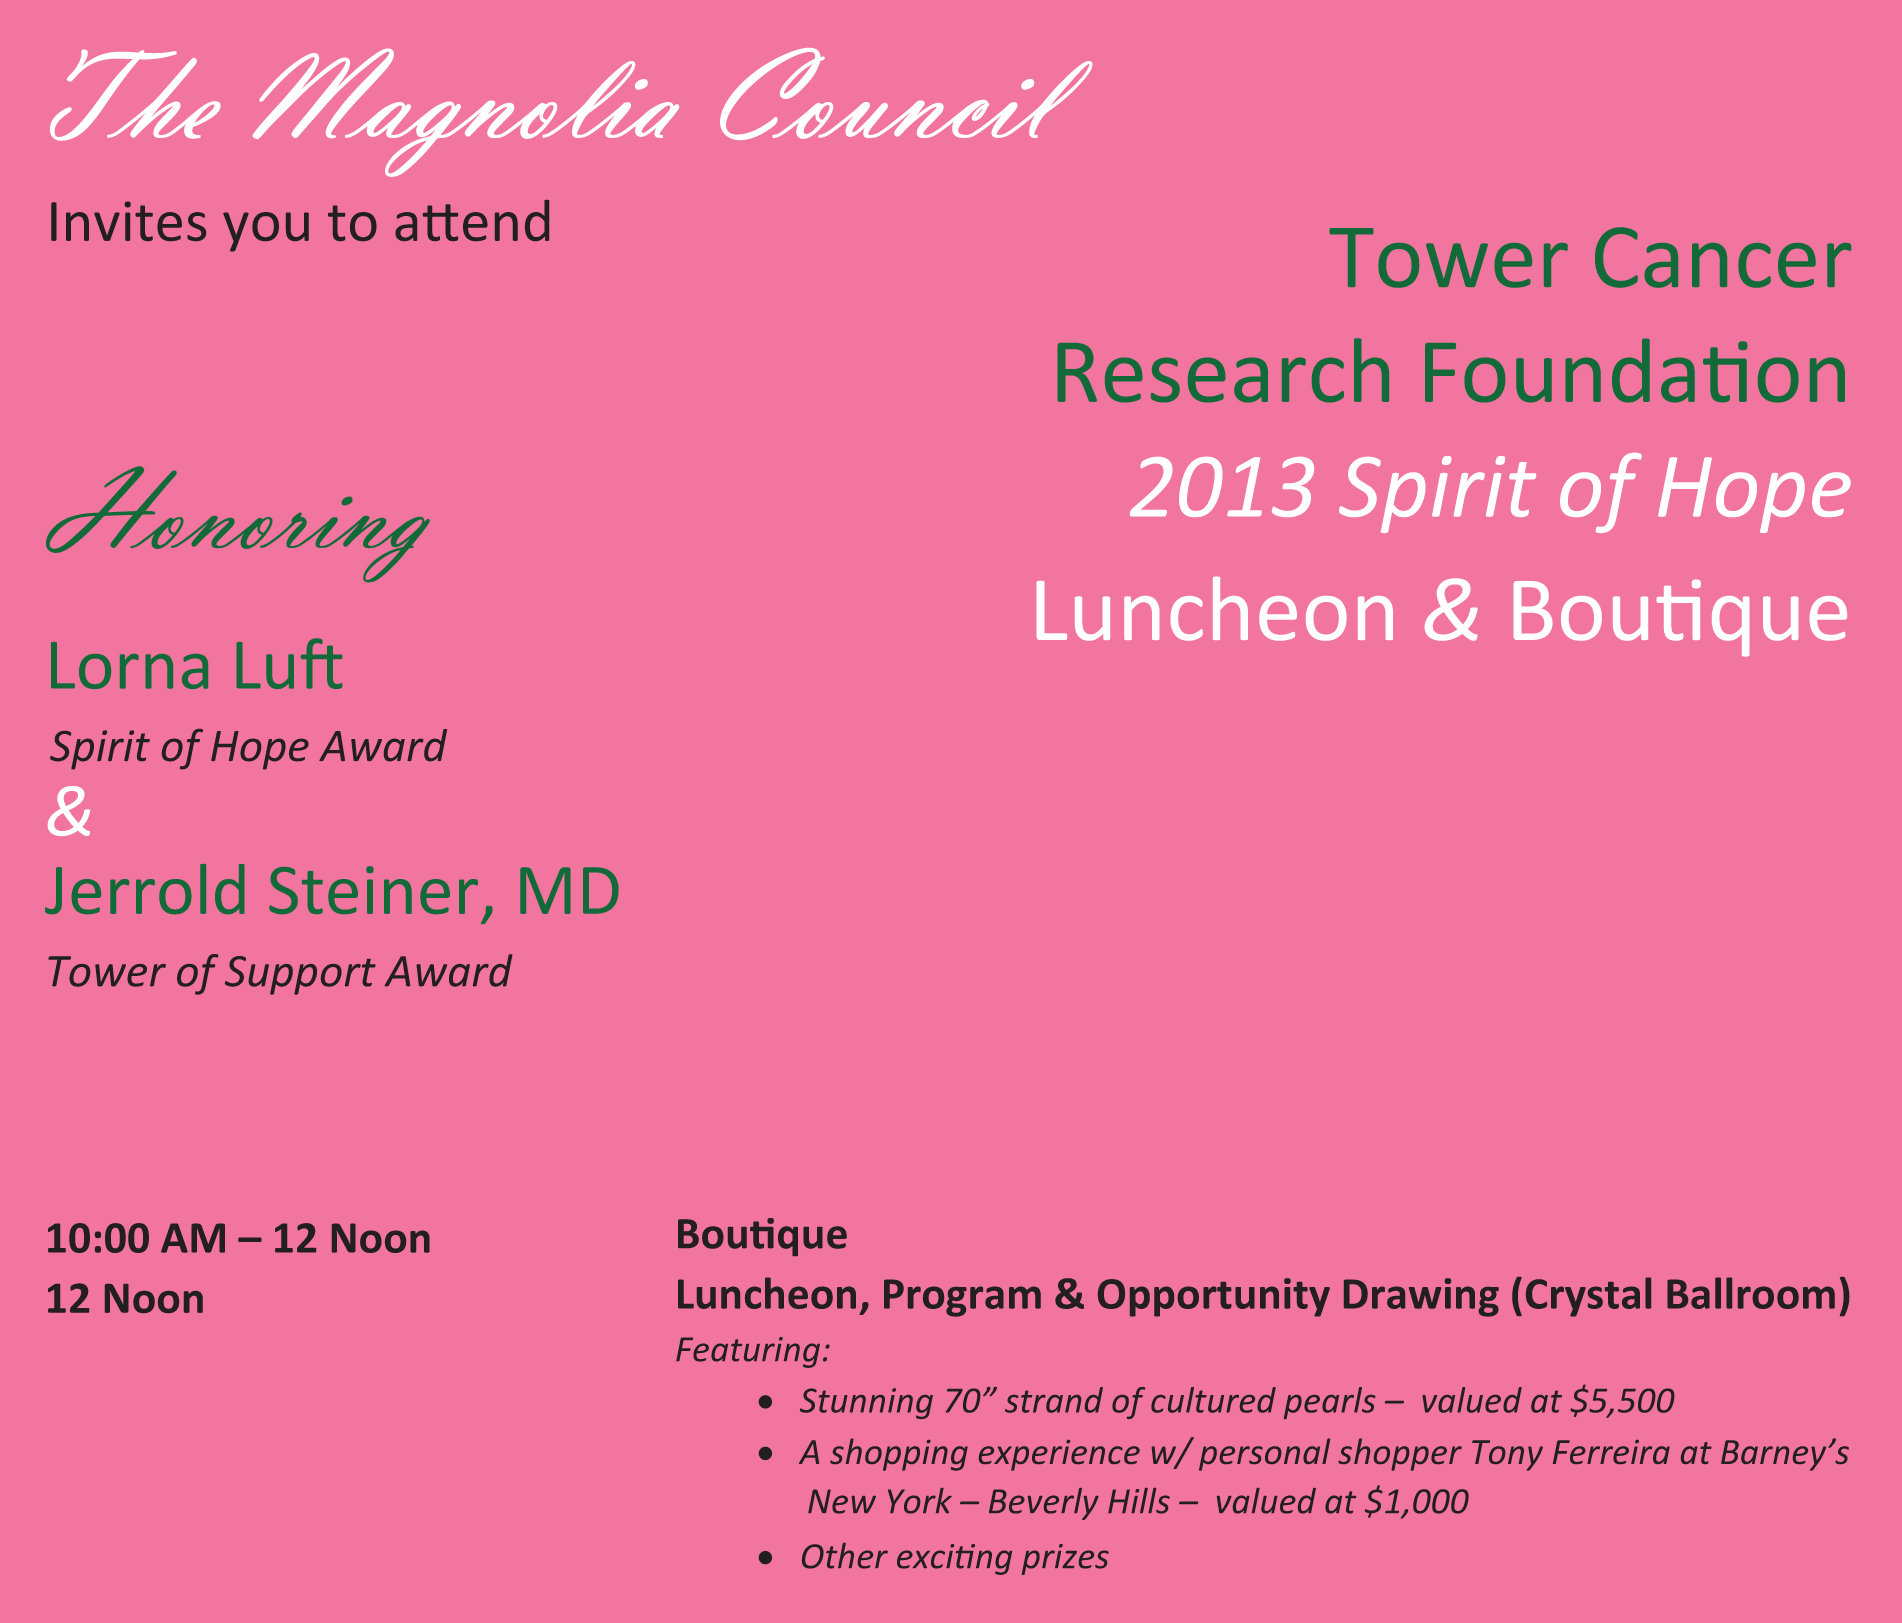 The Magnolia Council invites you to attend...